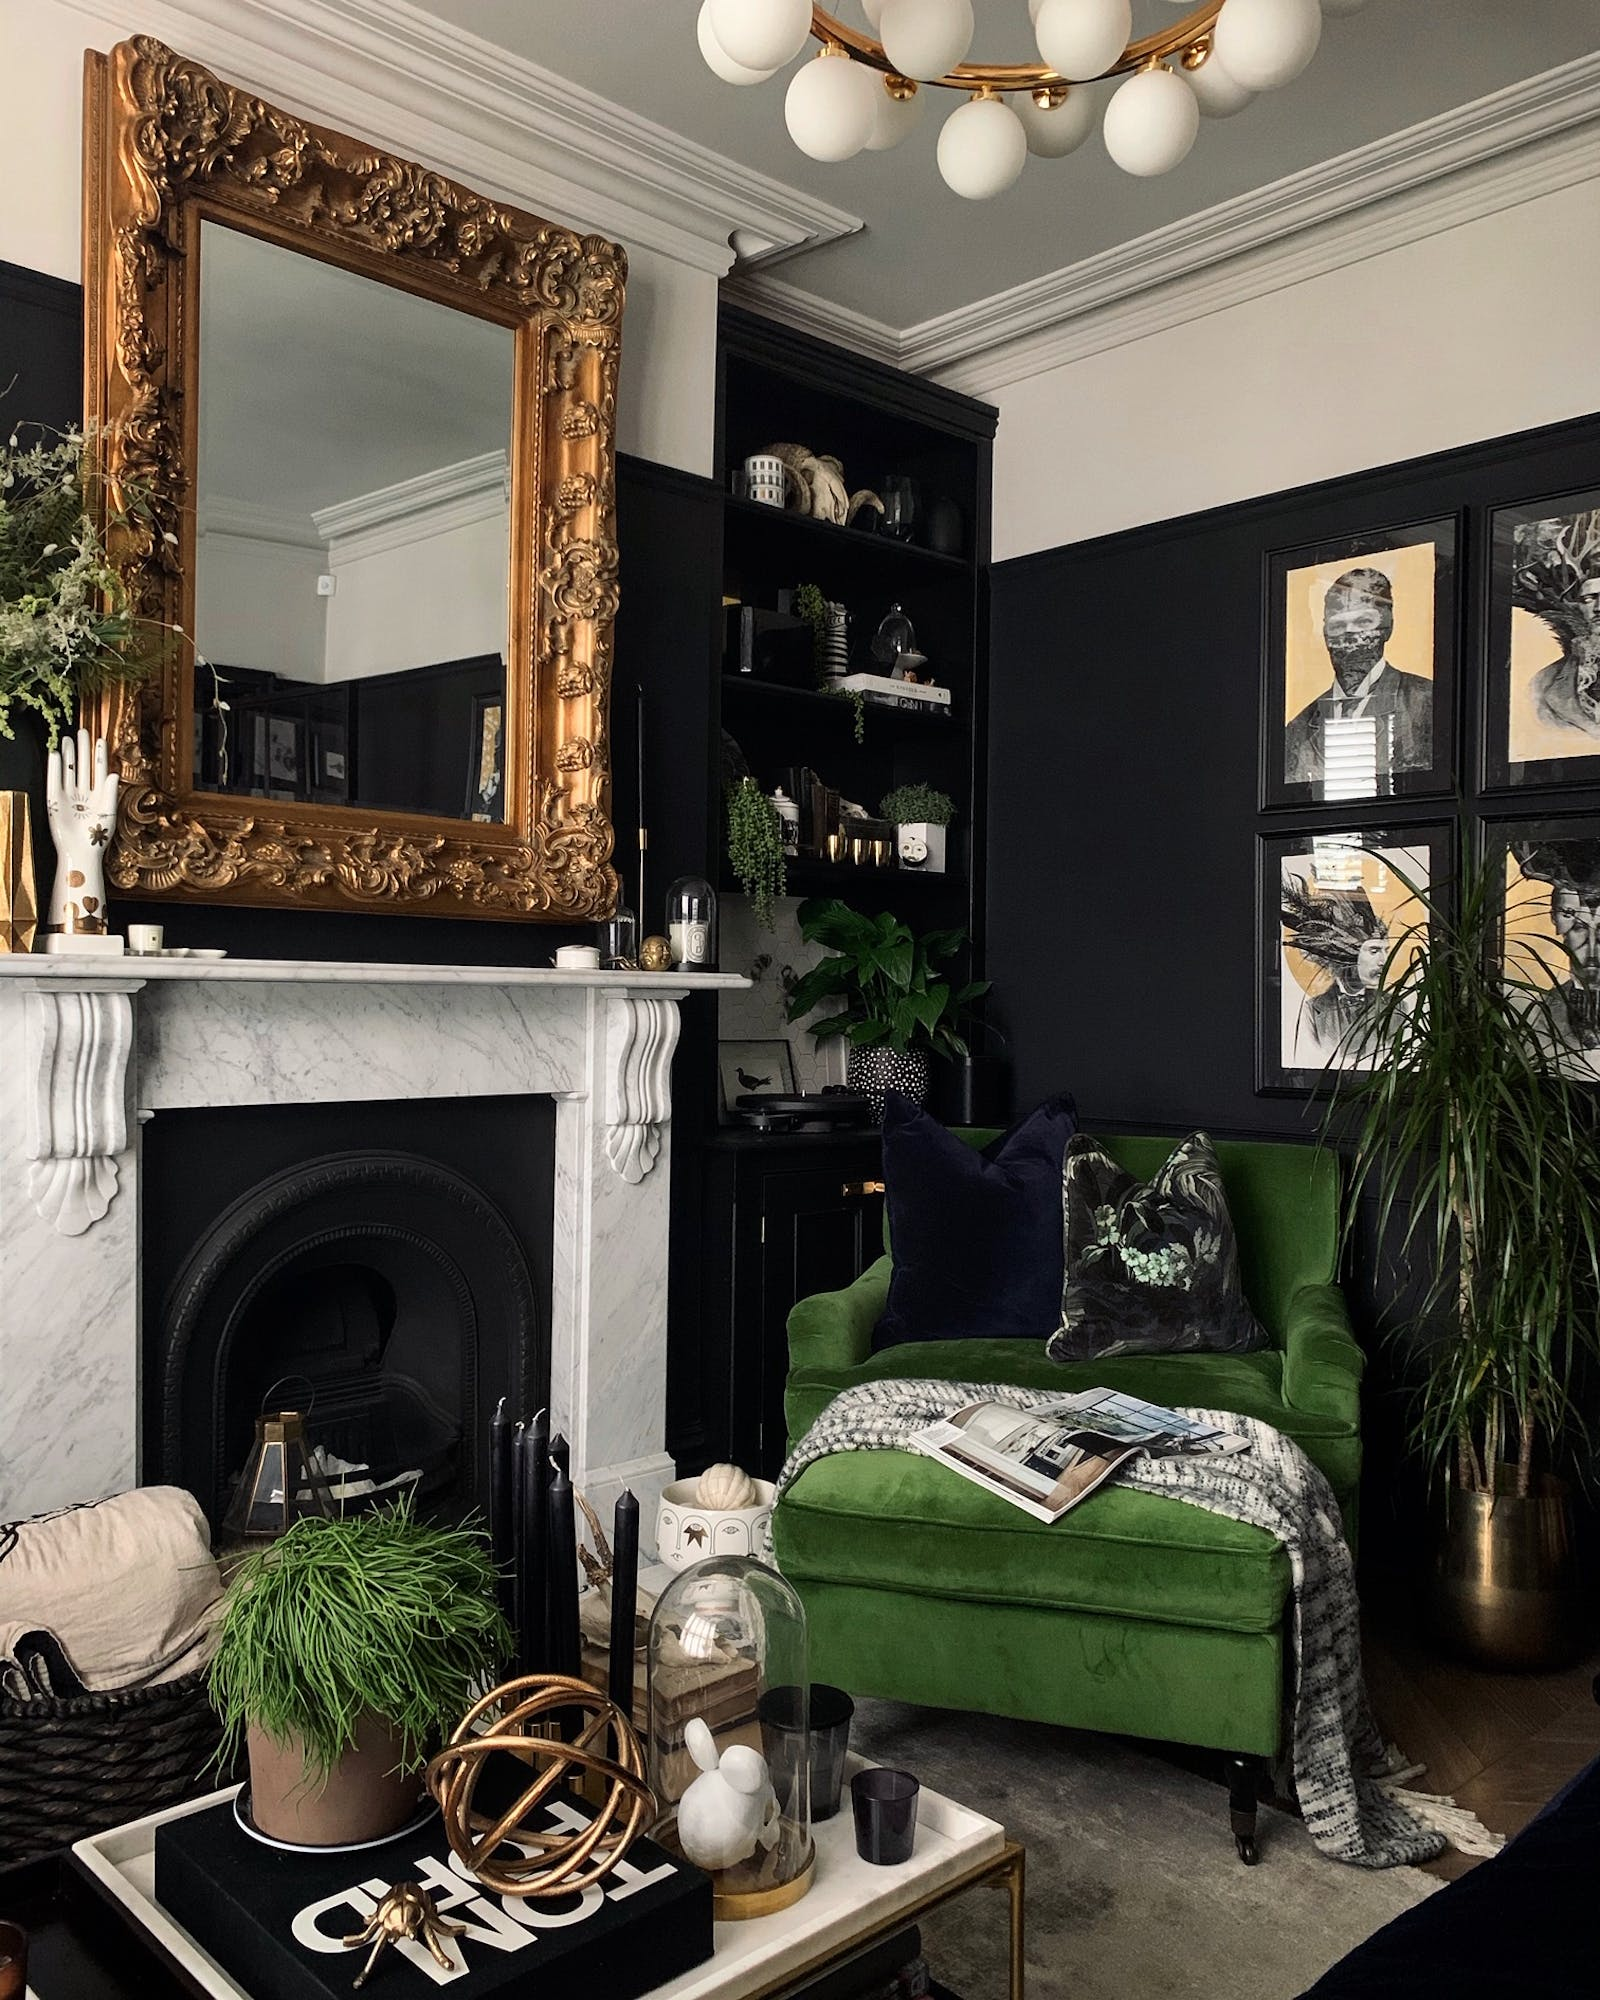 Fireplace, a vintage square mirror and a velvet green armchair arranged in front of a wall painted in black